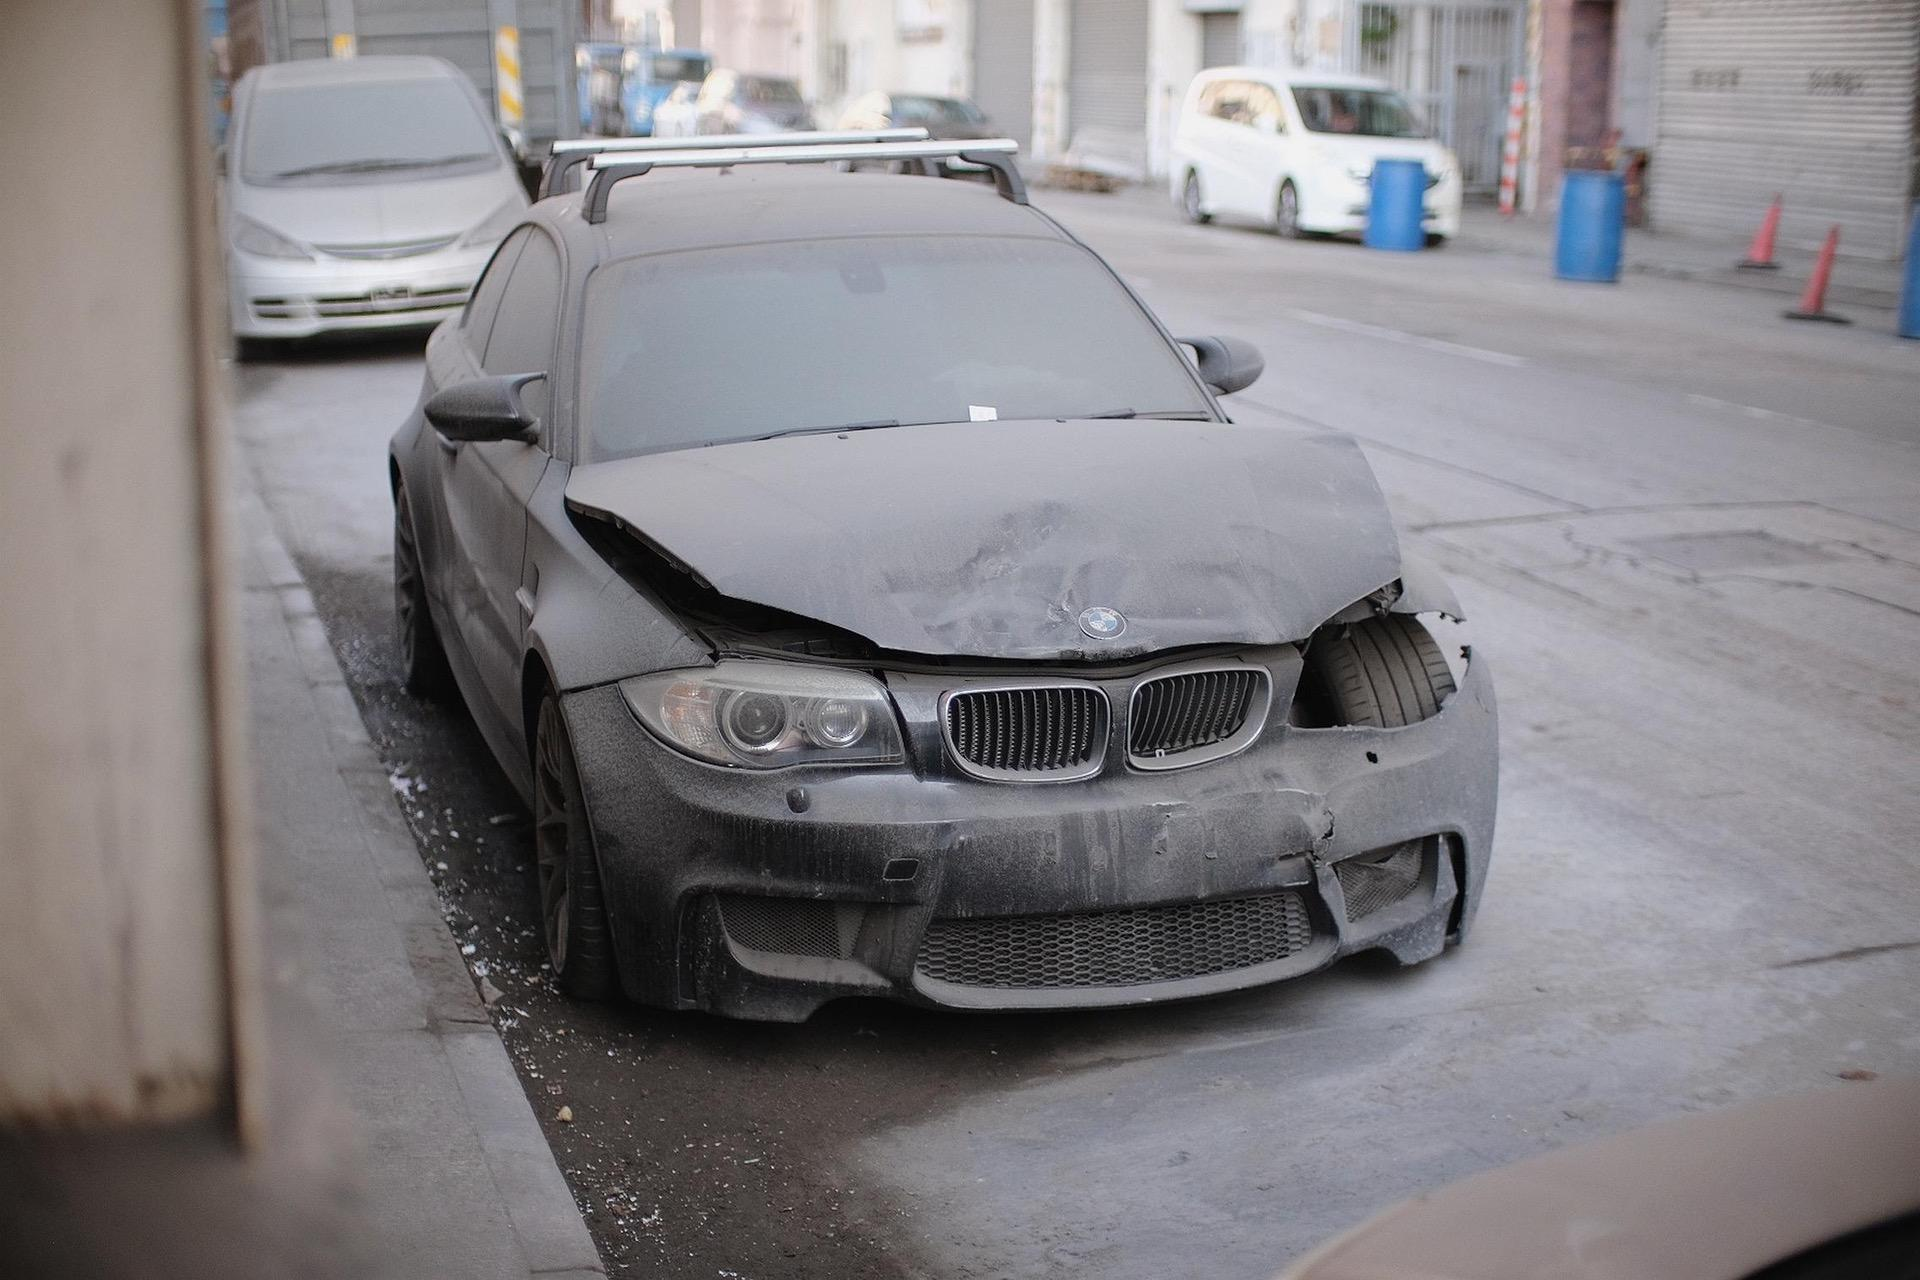 Wrecked_BMW_1M_Coupe_0008